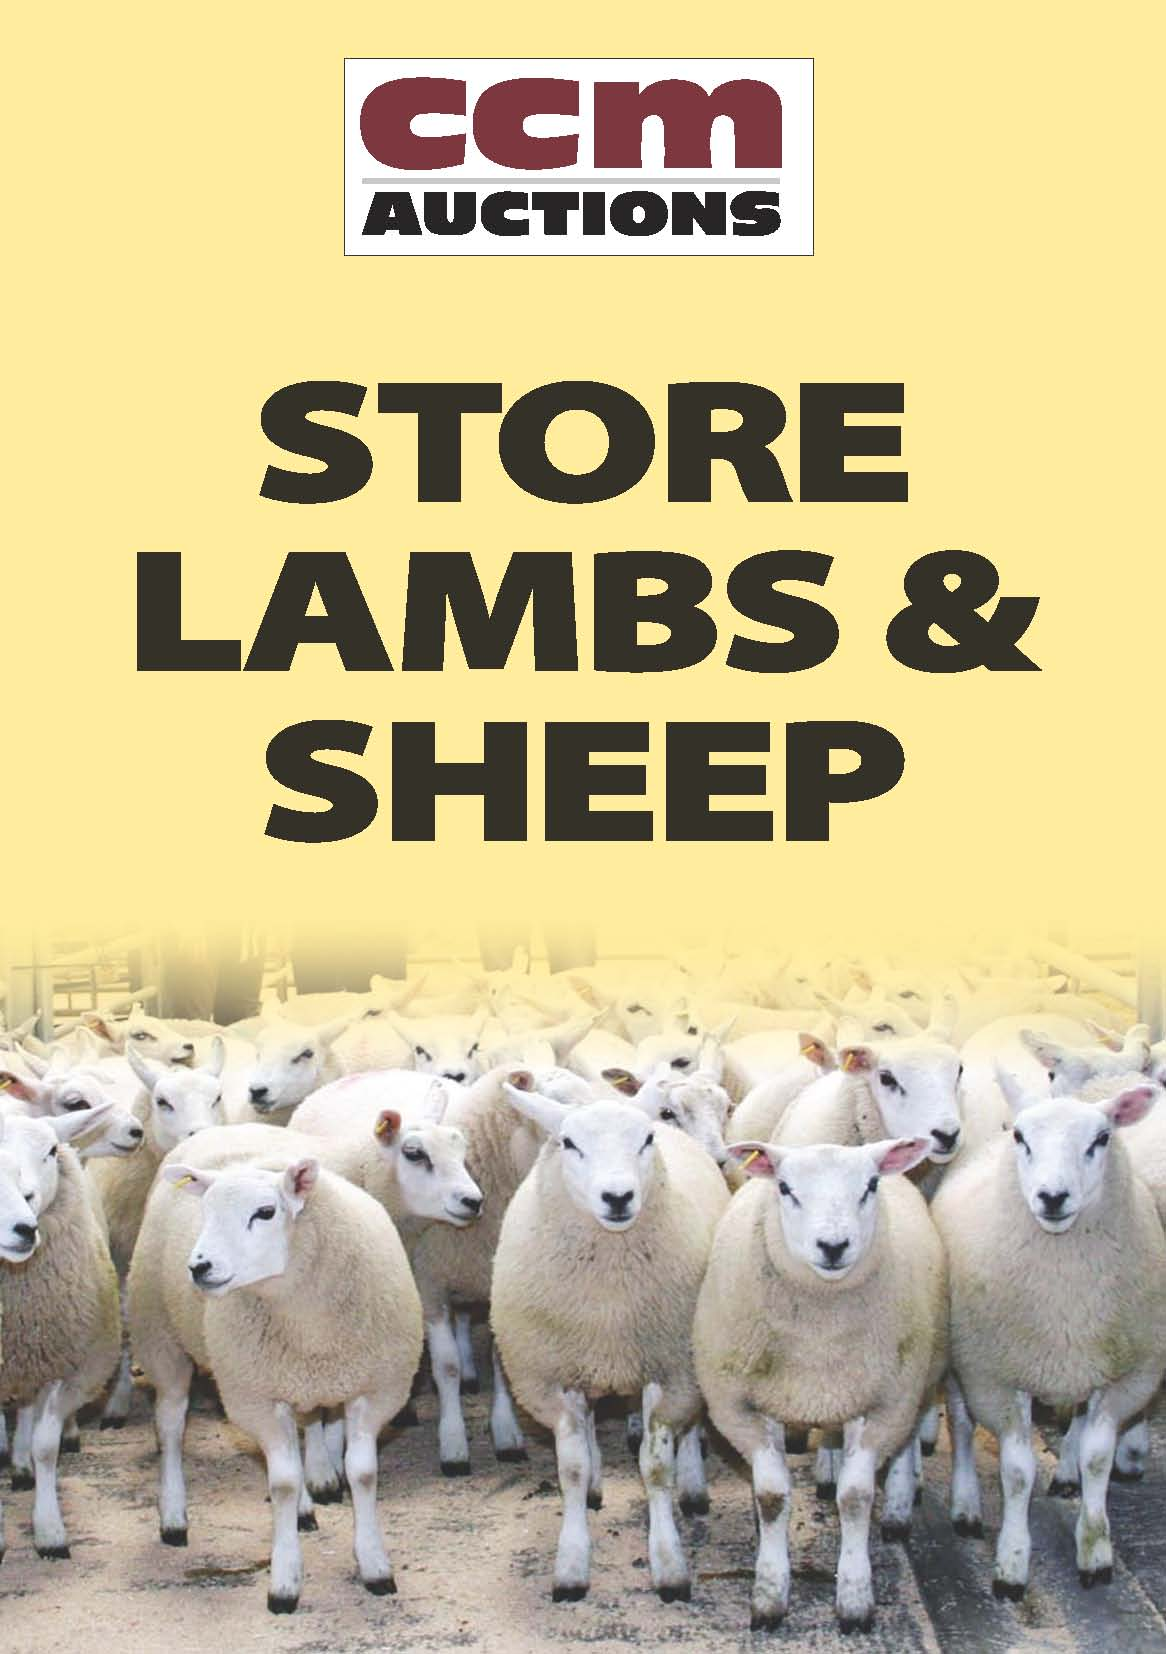 STORE LAMBS & BREEDING SHEEP - WEDNESDAY 10TH FEBRUARY 2016